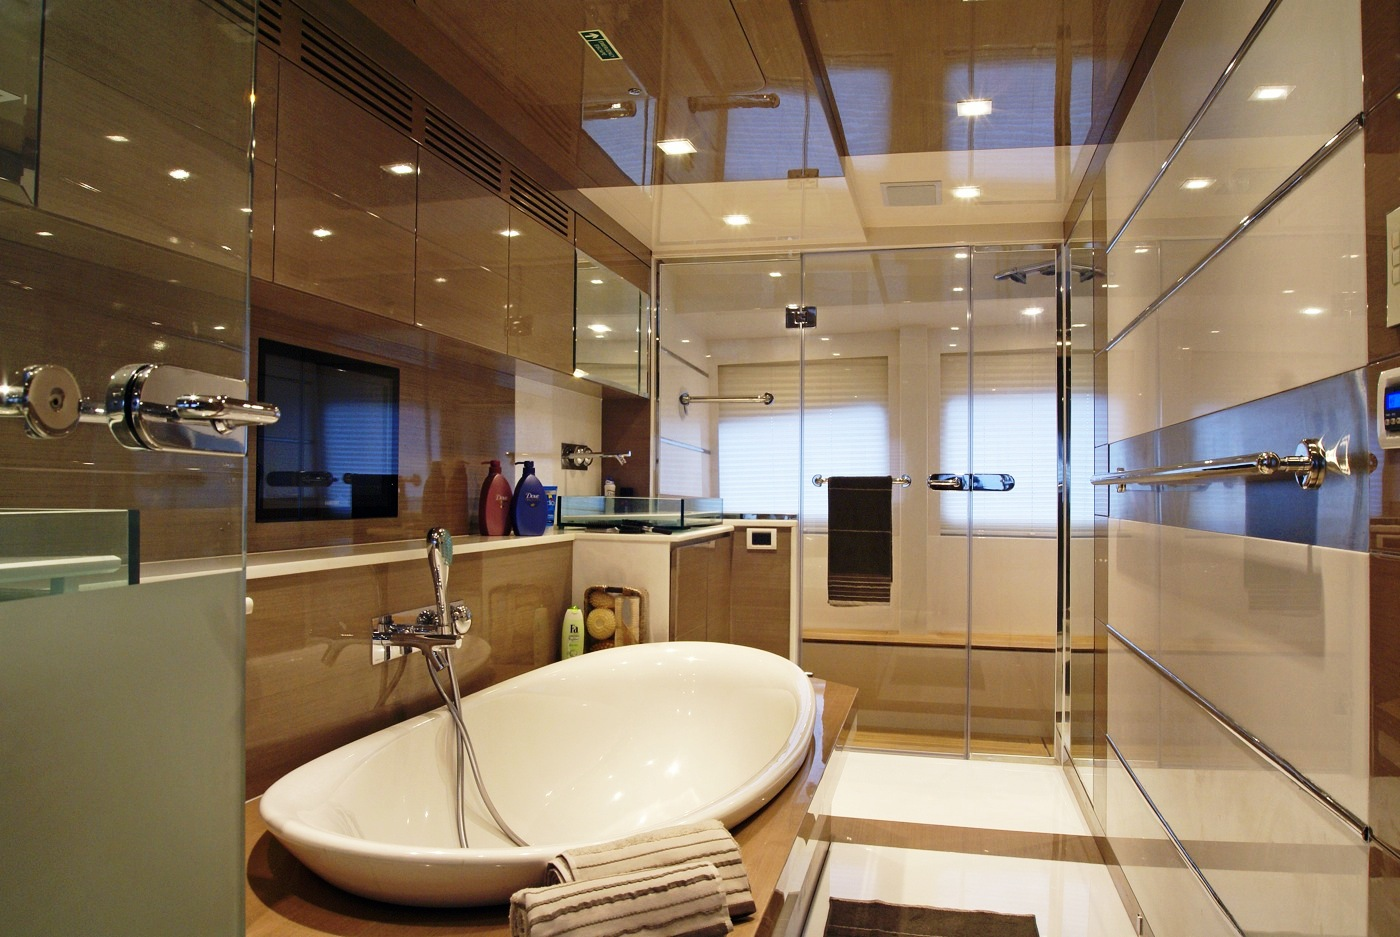 Motor Yacht Noor Master Bathroom Yacht Charter Superyacht News: small yacht bathroom design